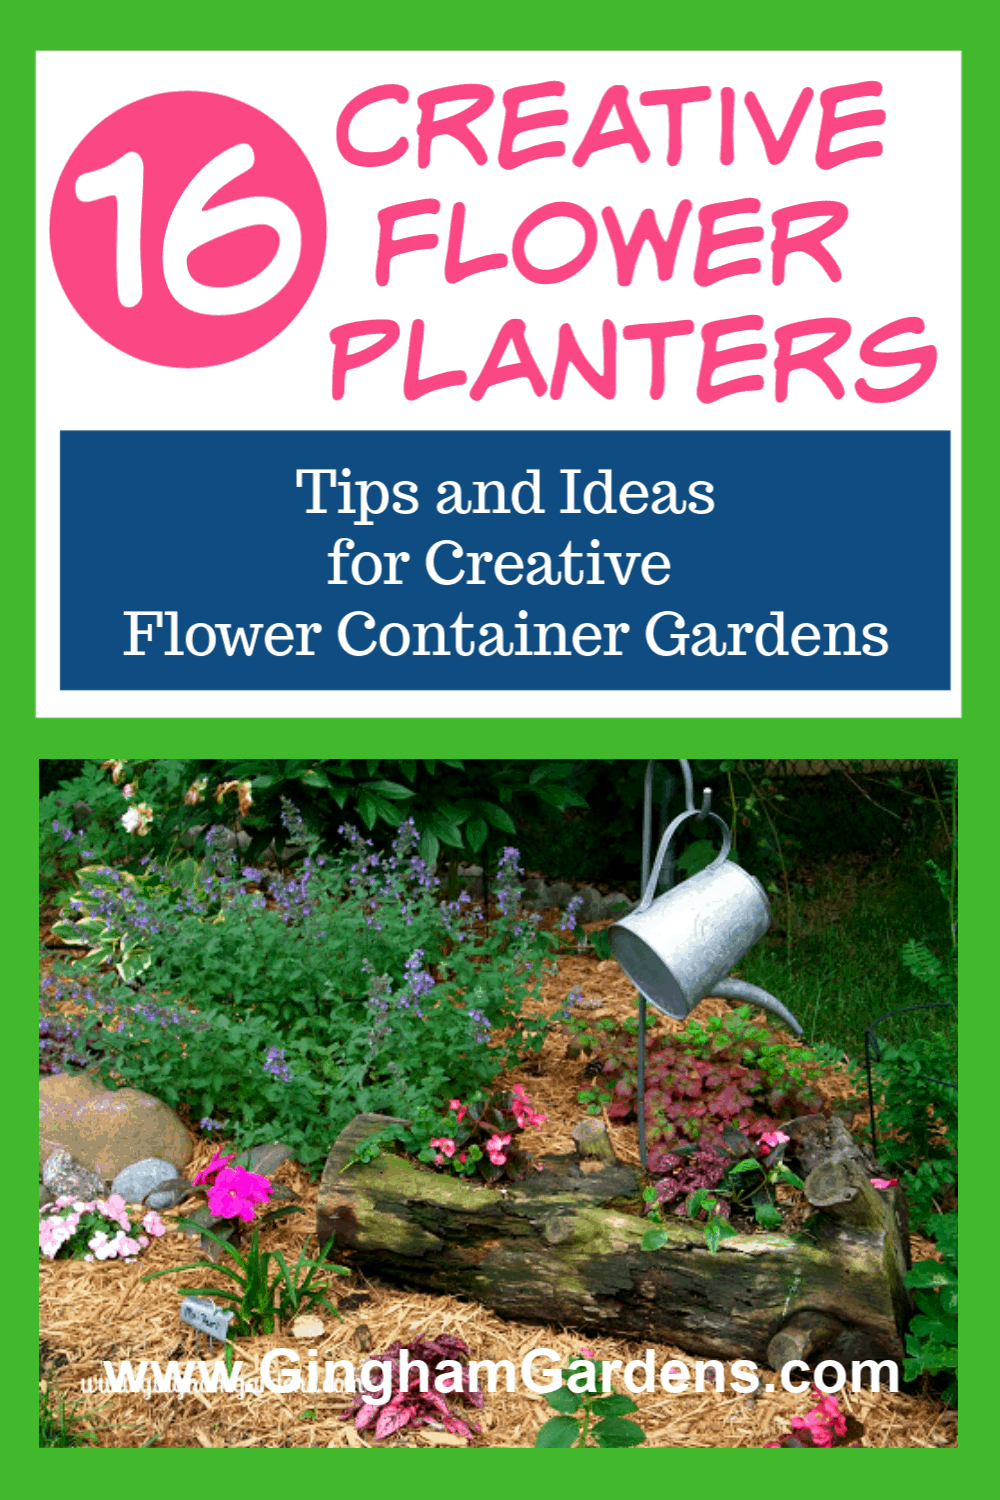 Image of a Garden with Text Overlay - 16 Creative Flower Planters